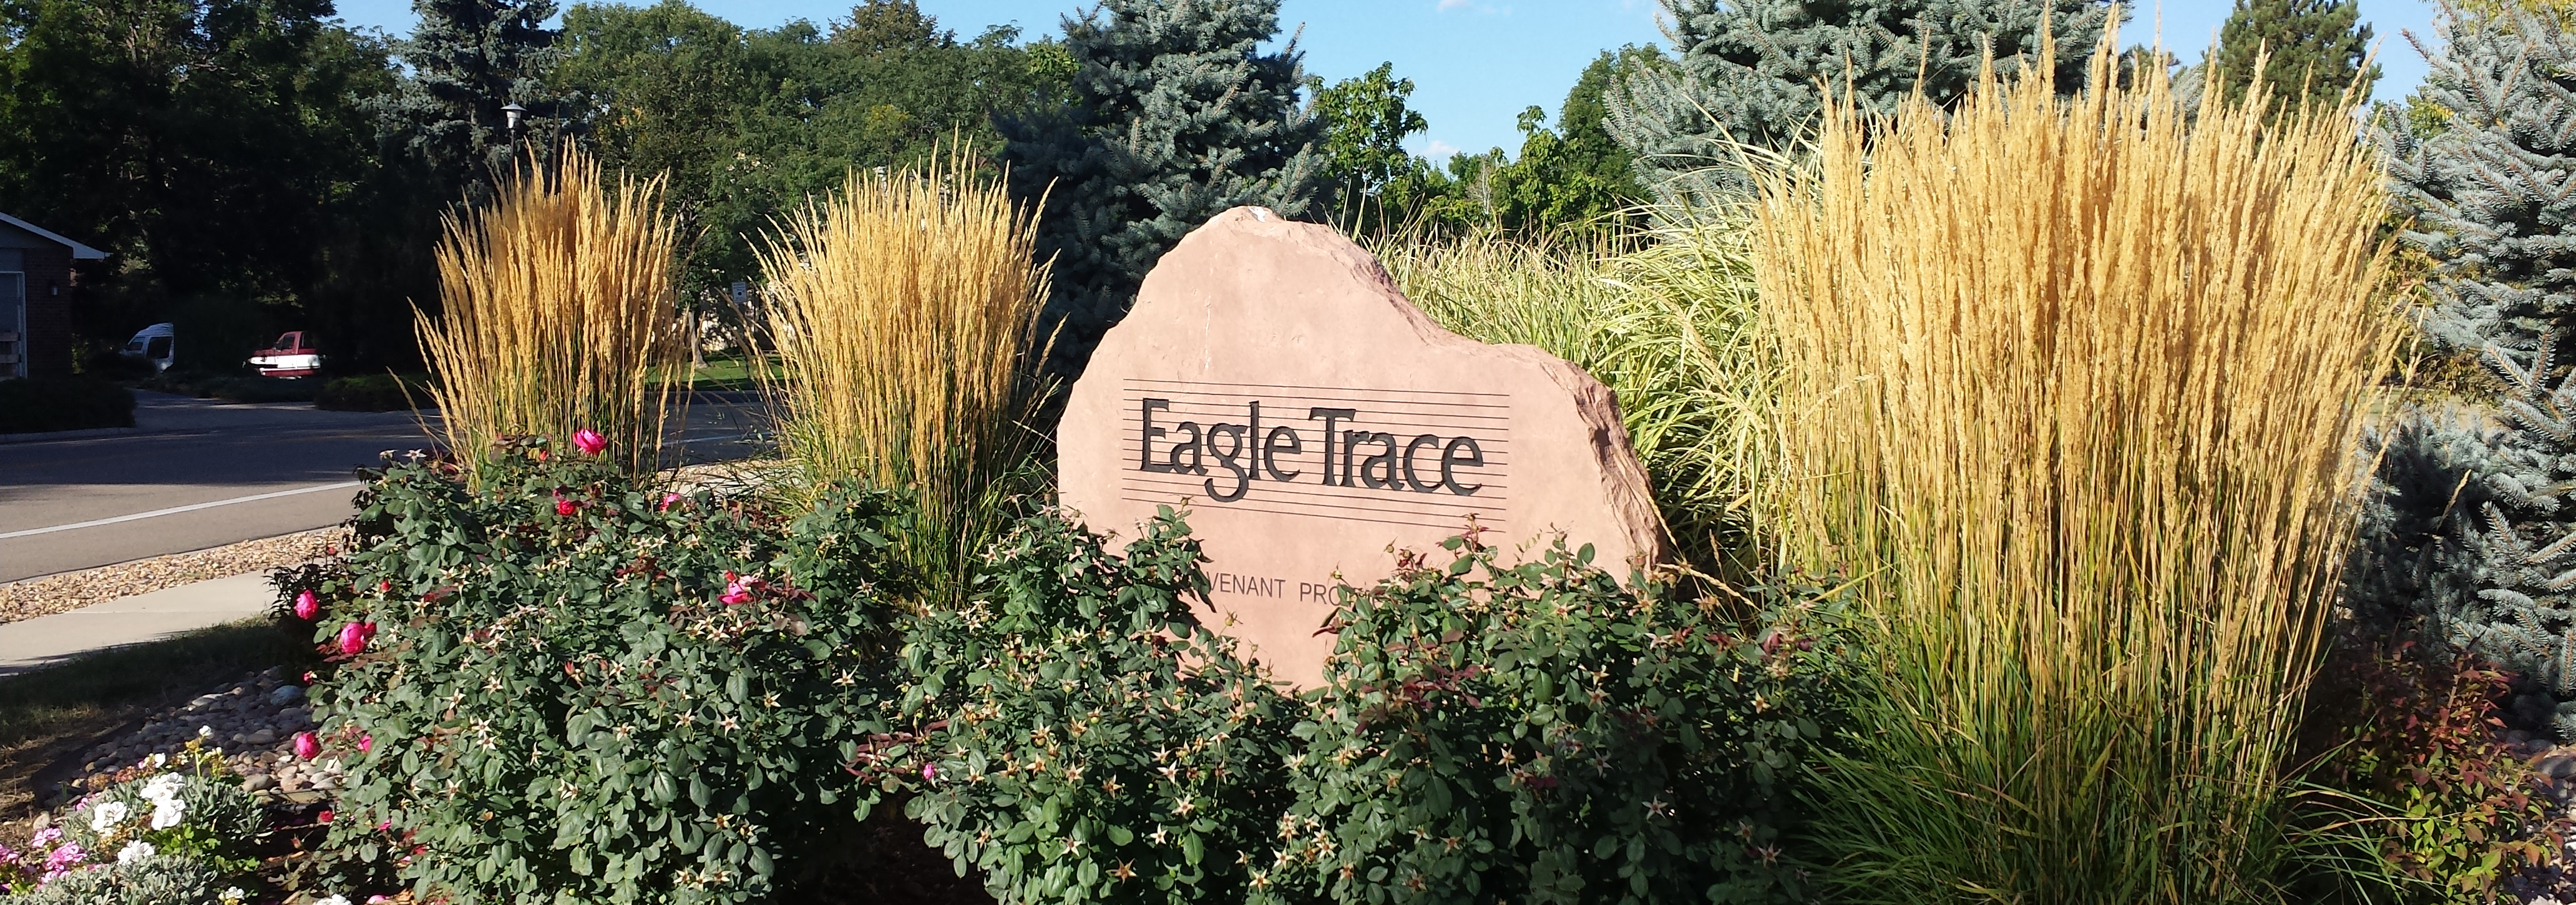 Eagle Trace Home Owners Association